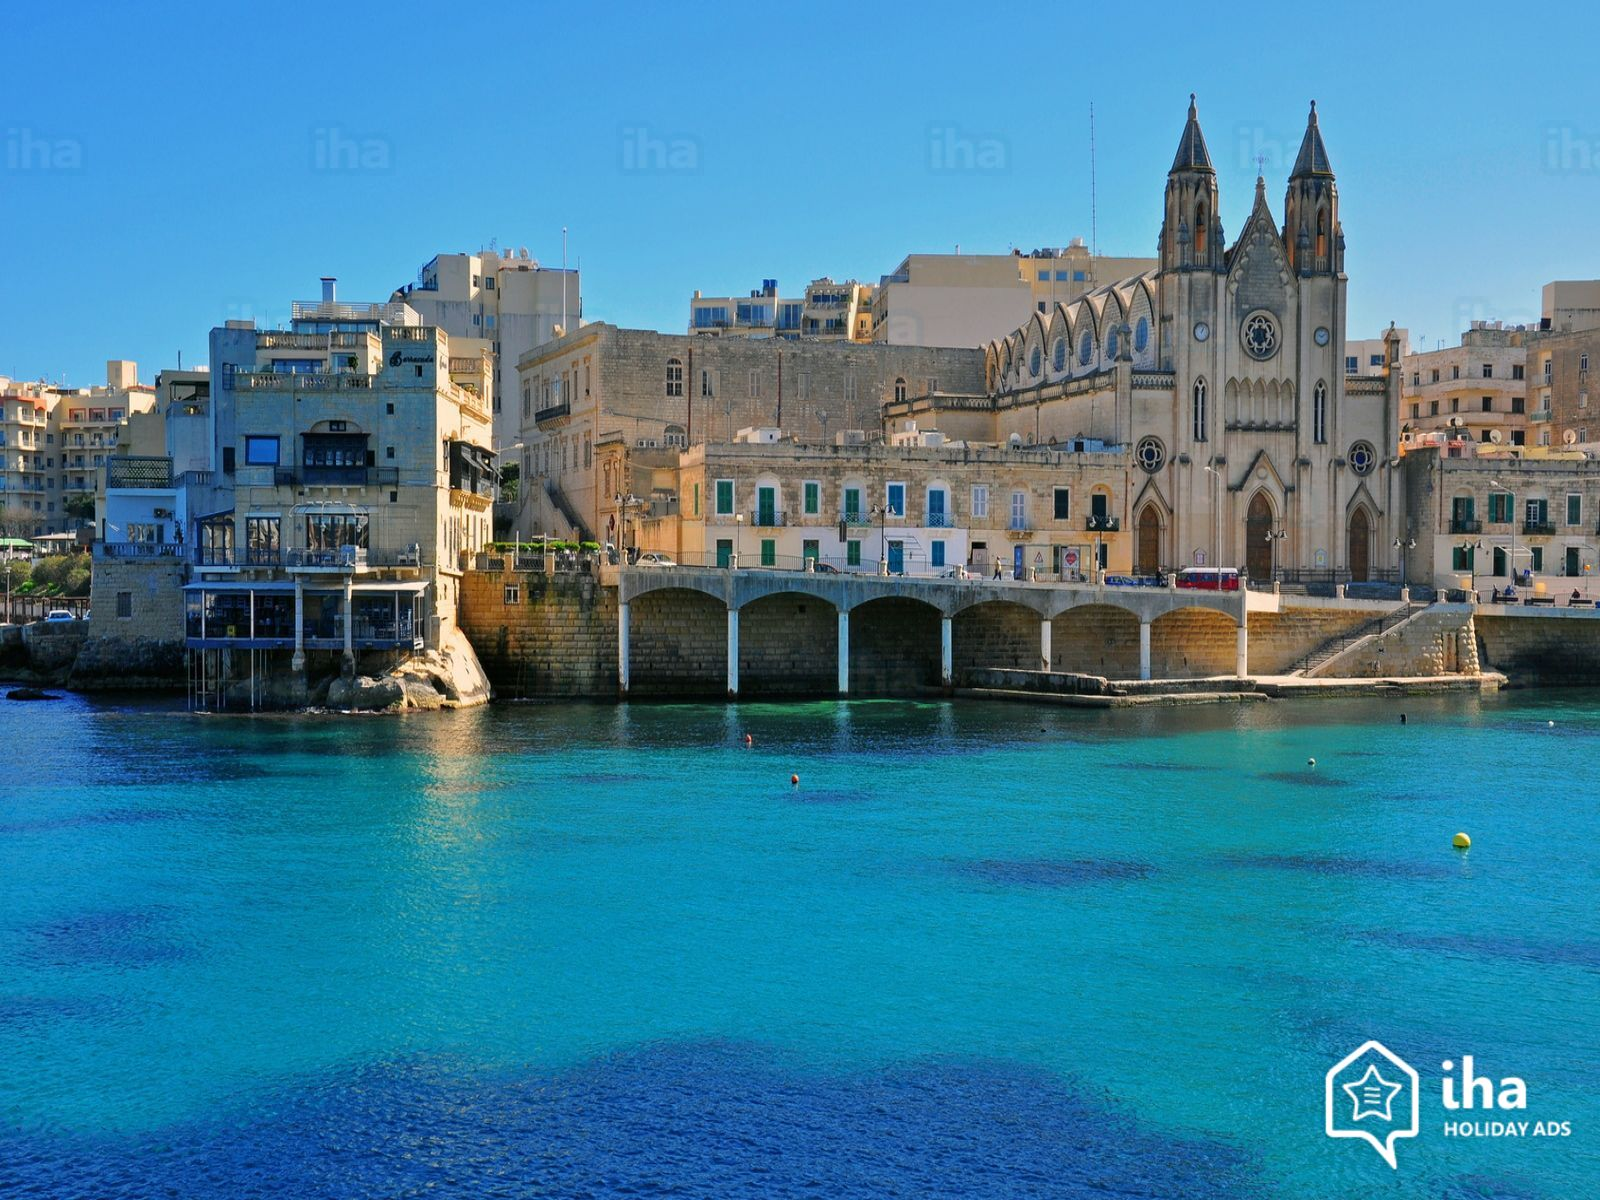 Malta-View-of-st-julian-on-the-island-of-malta